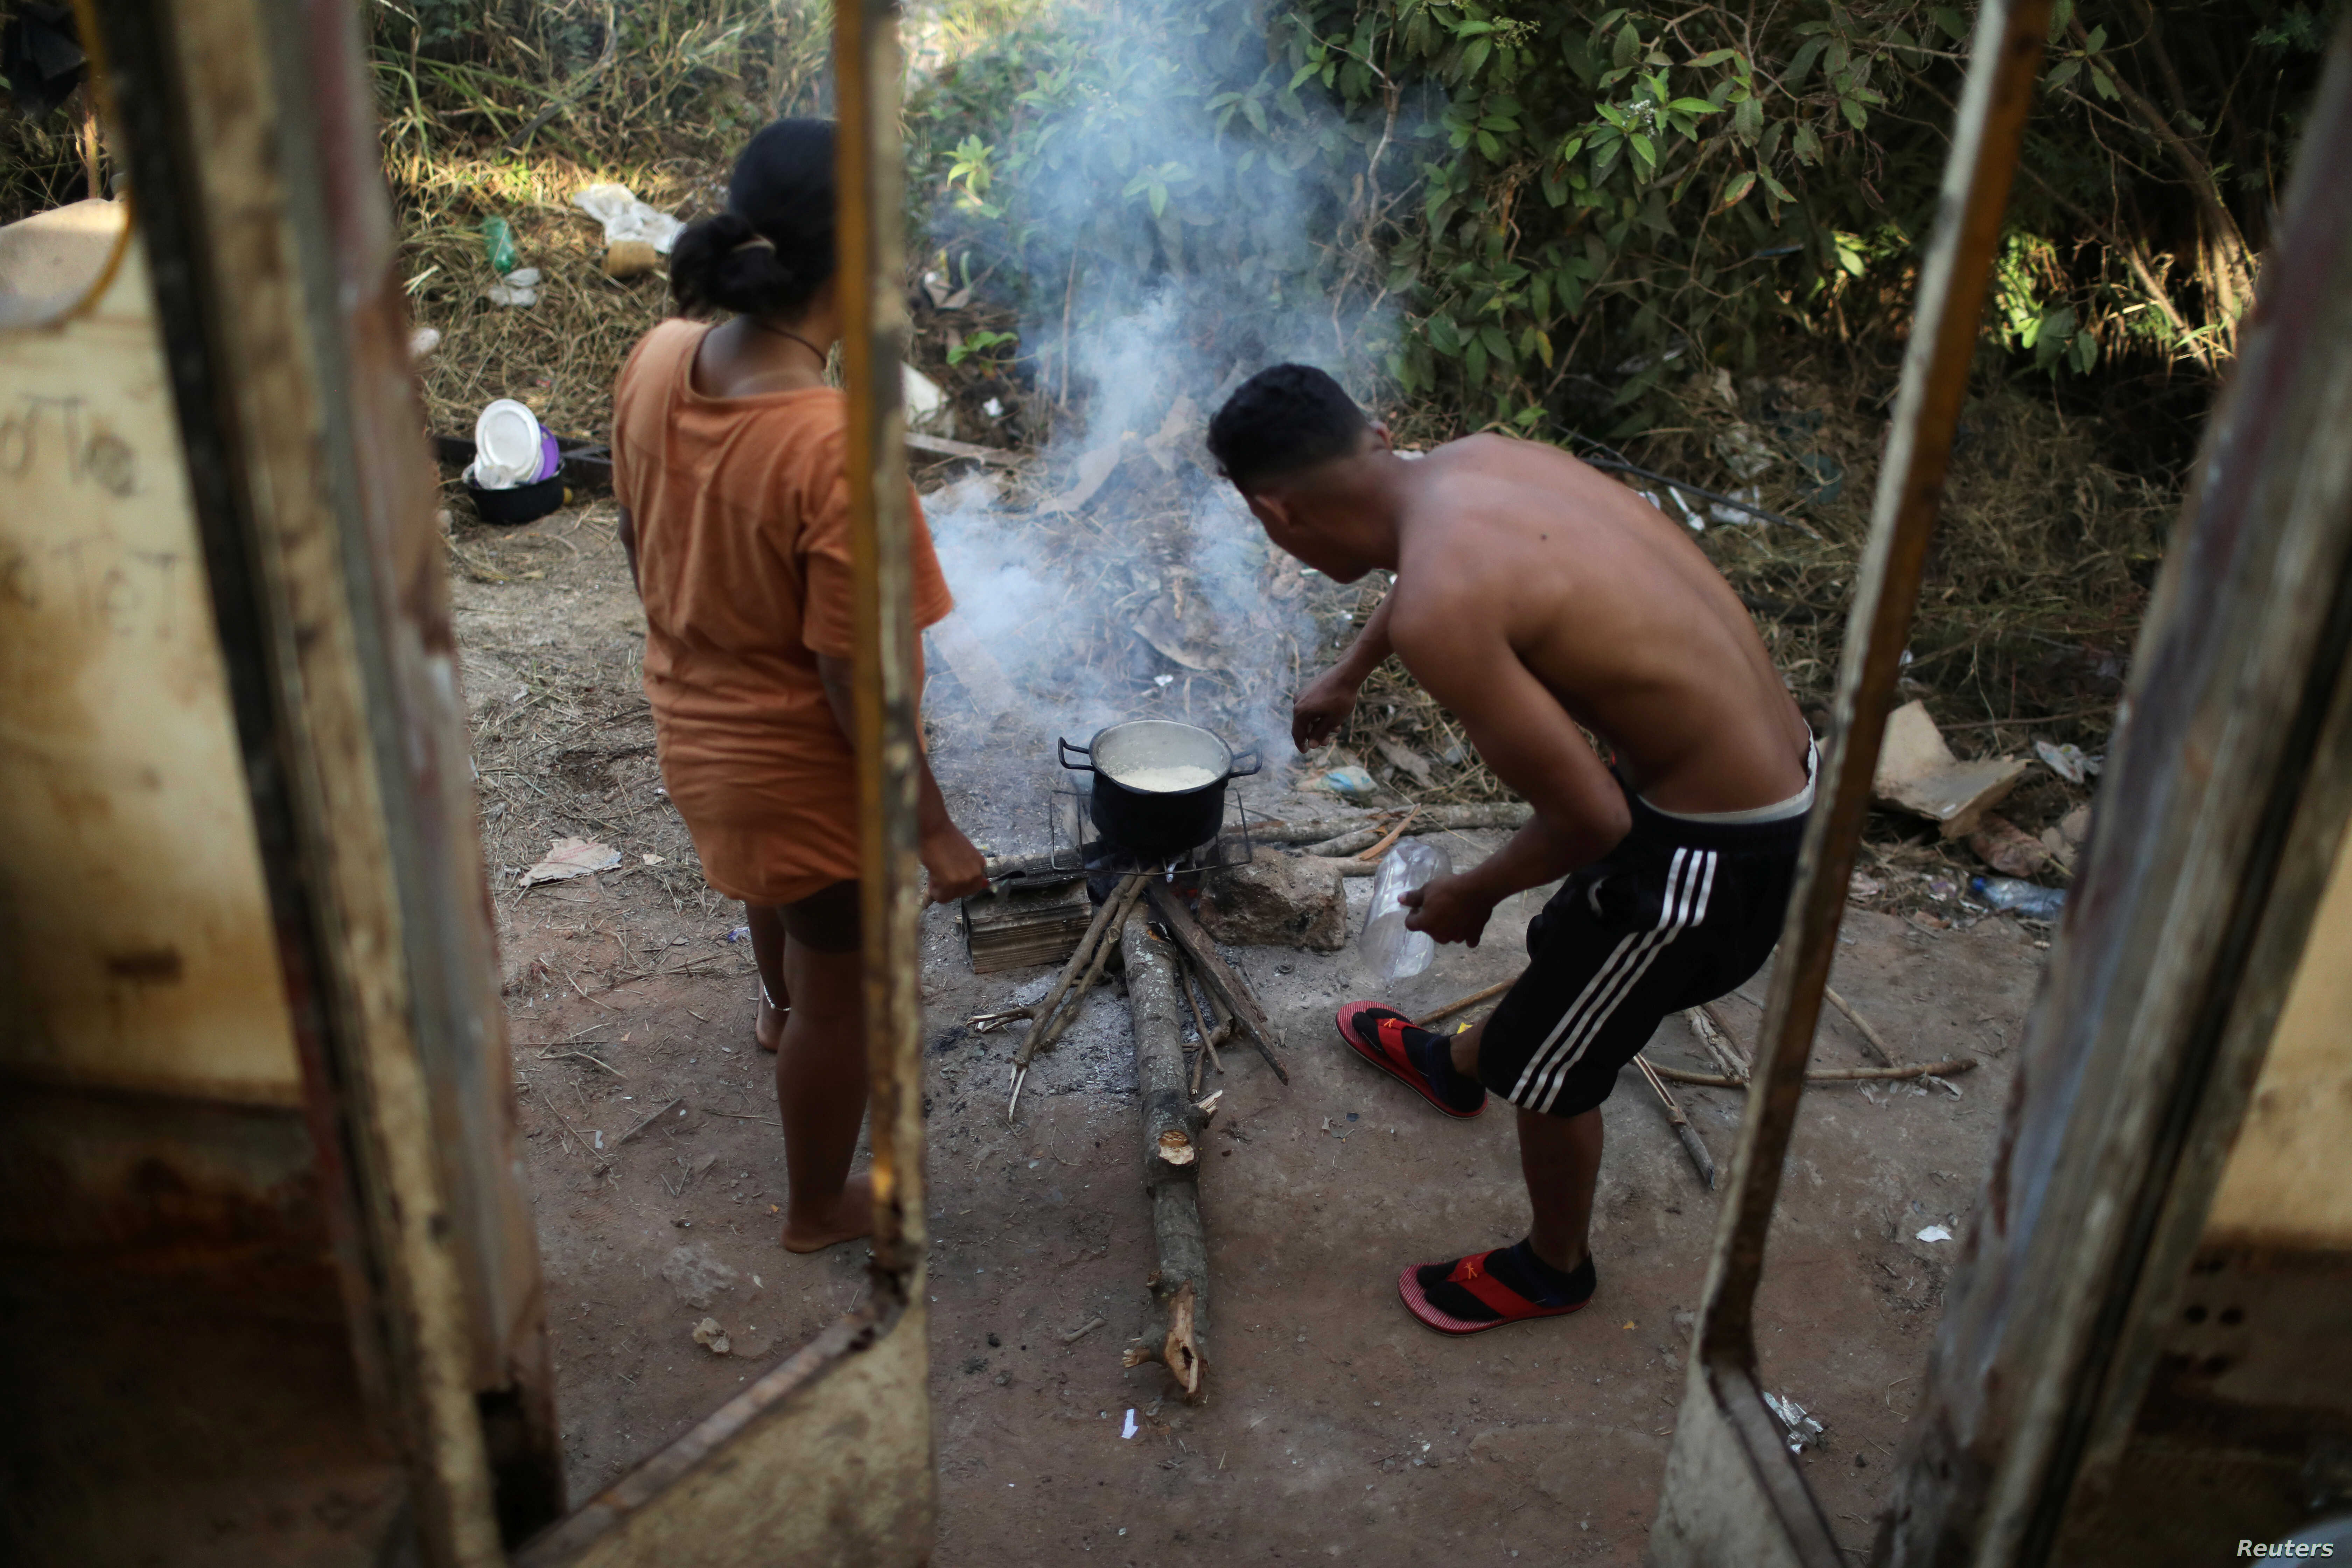 Venezuelans Hildemaro Ortiz and Ixora Sanguino cook outside of an abandoned bus in the border city of Pacaraima, Brazil, April 13, 2019.